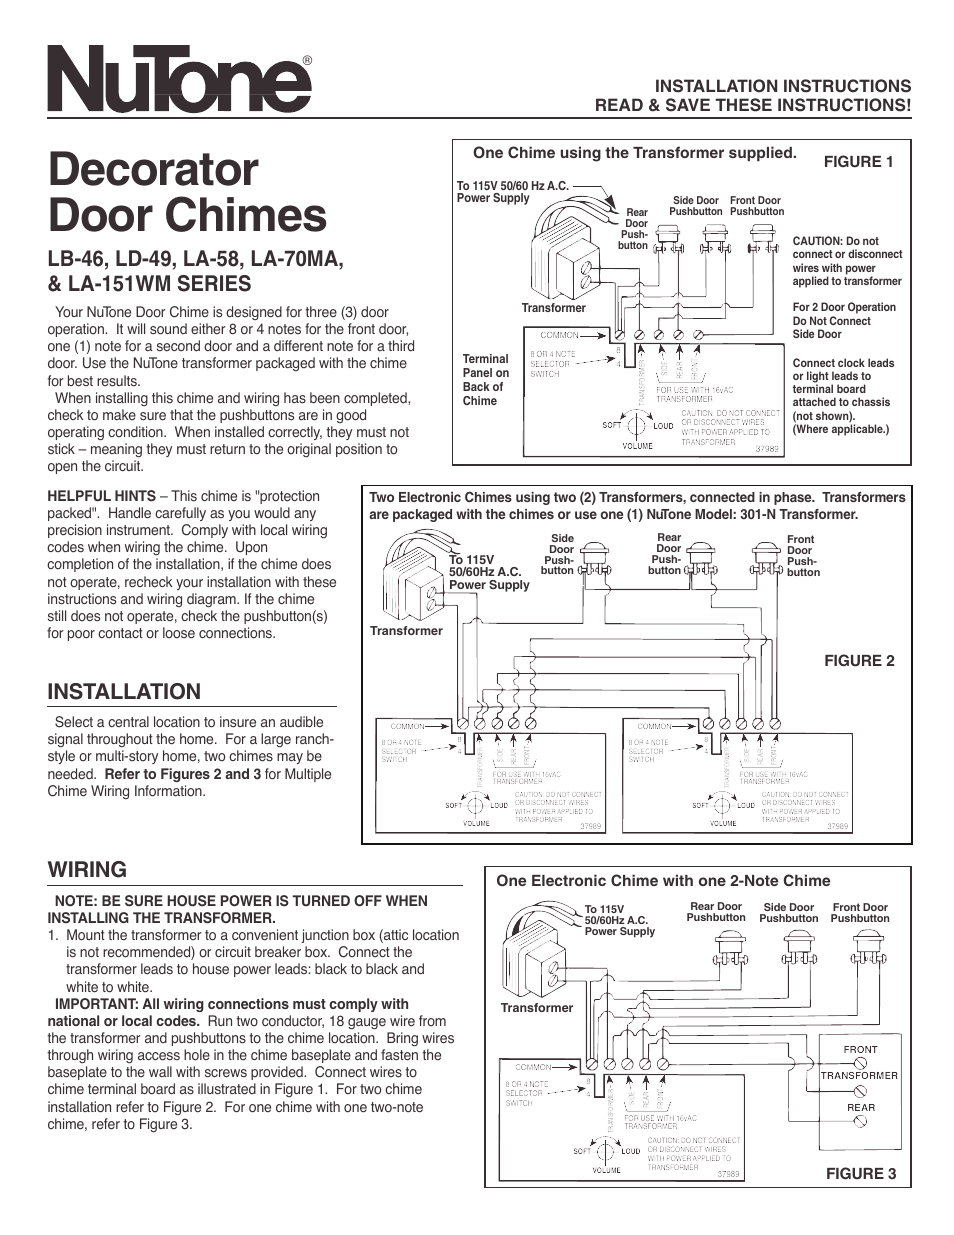 nutone decorator door chimes la 58 page1?resize\\\\\\\\\\\\\\\\\\\\\\\\\\\\\\\\\\\\\\\\\\\\\\\\\\\=665%2C861 ring doorbell wiring diagram doorbell transformer diagram \u2022 wiring Doorbell Wiring-Diagram Two Chimes at mifinder.co